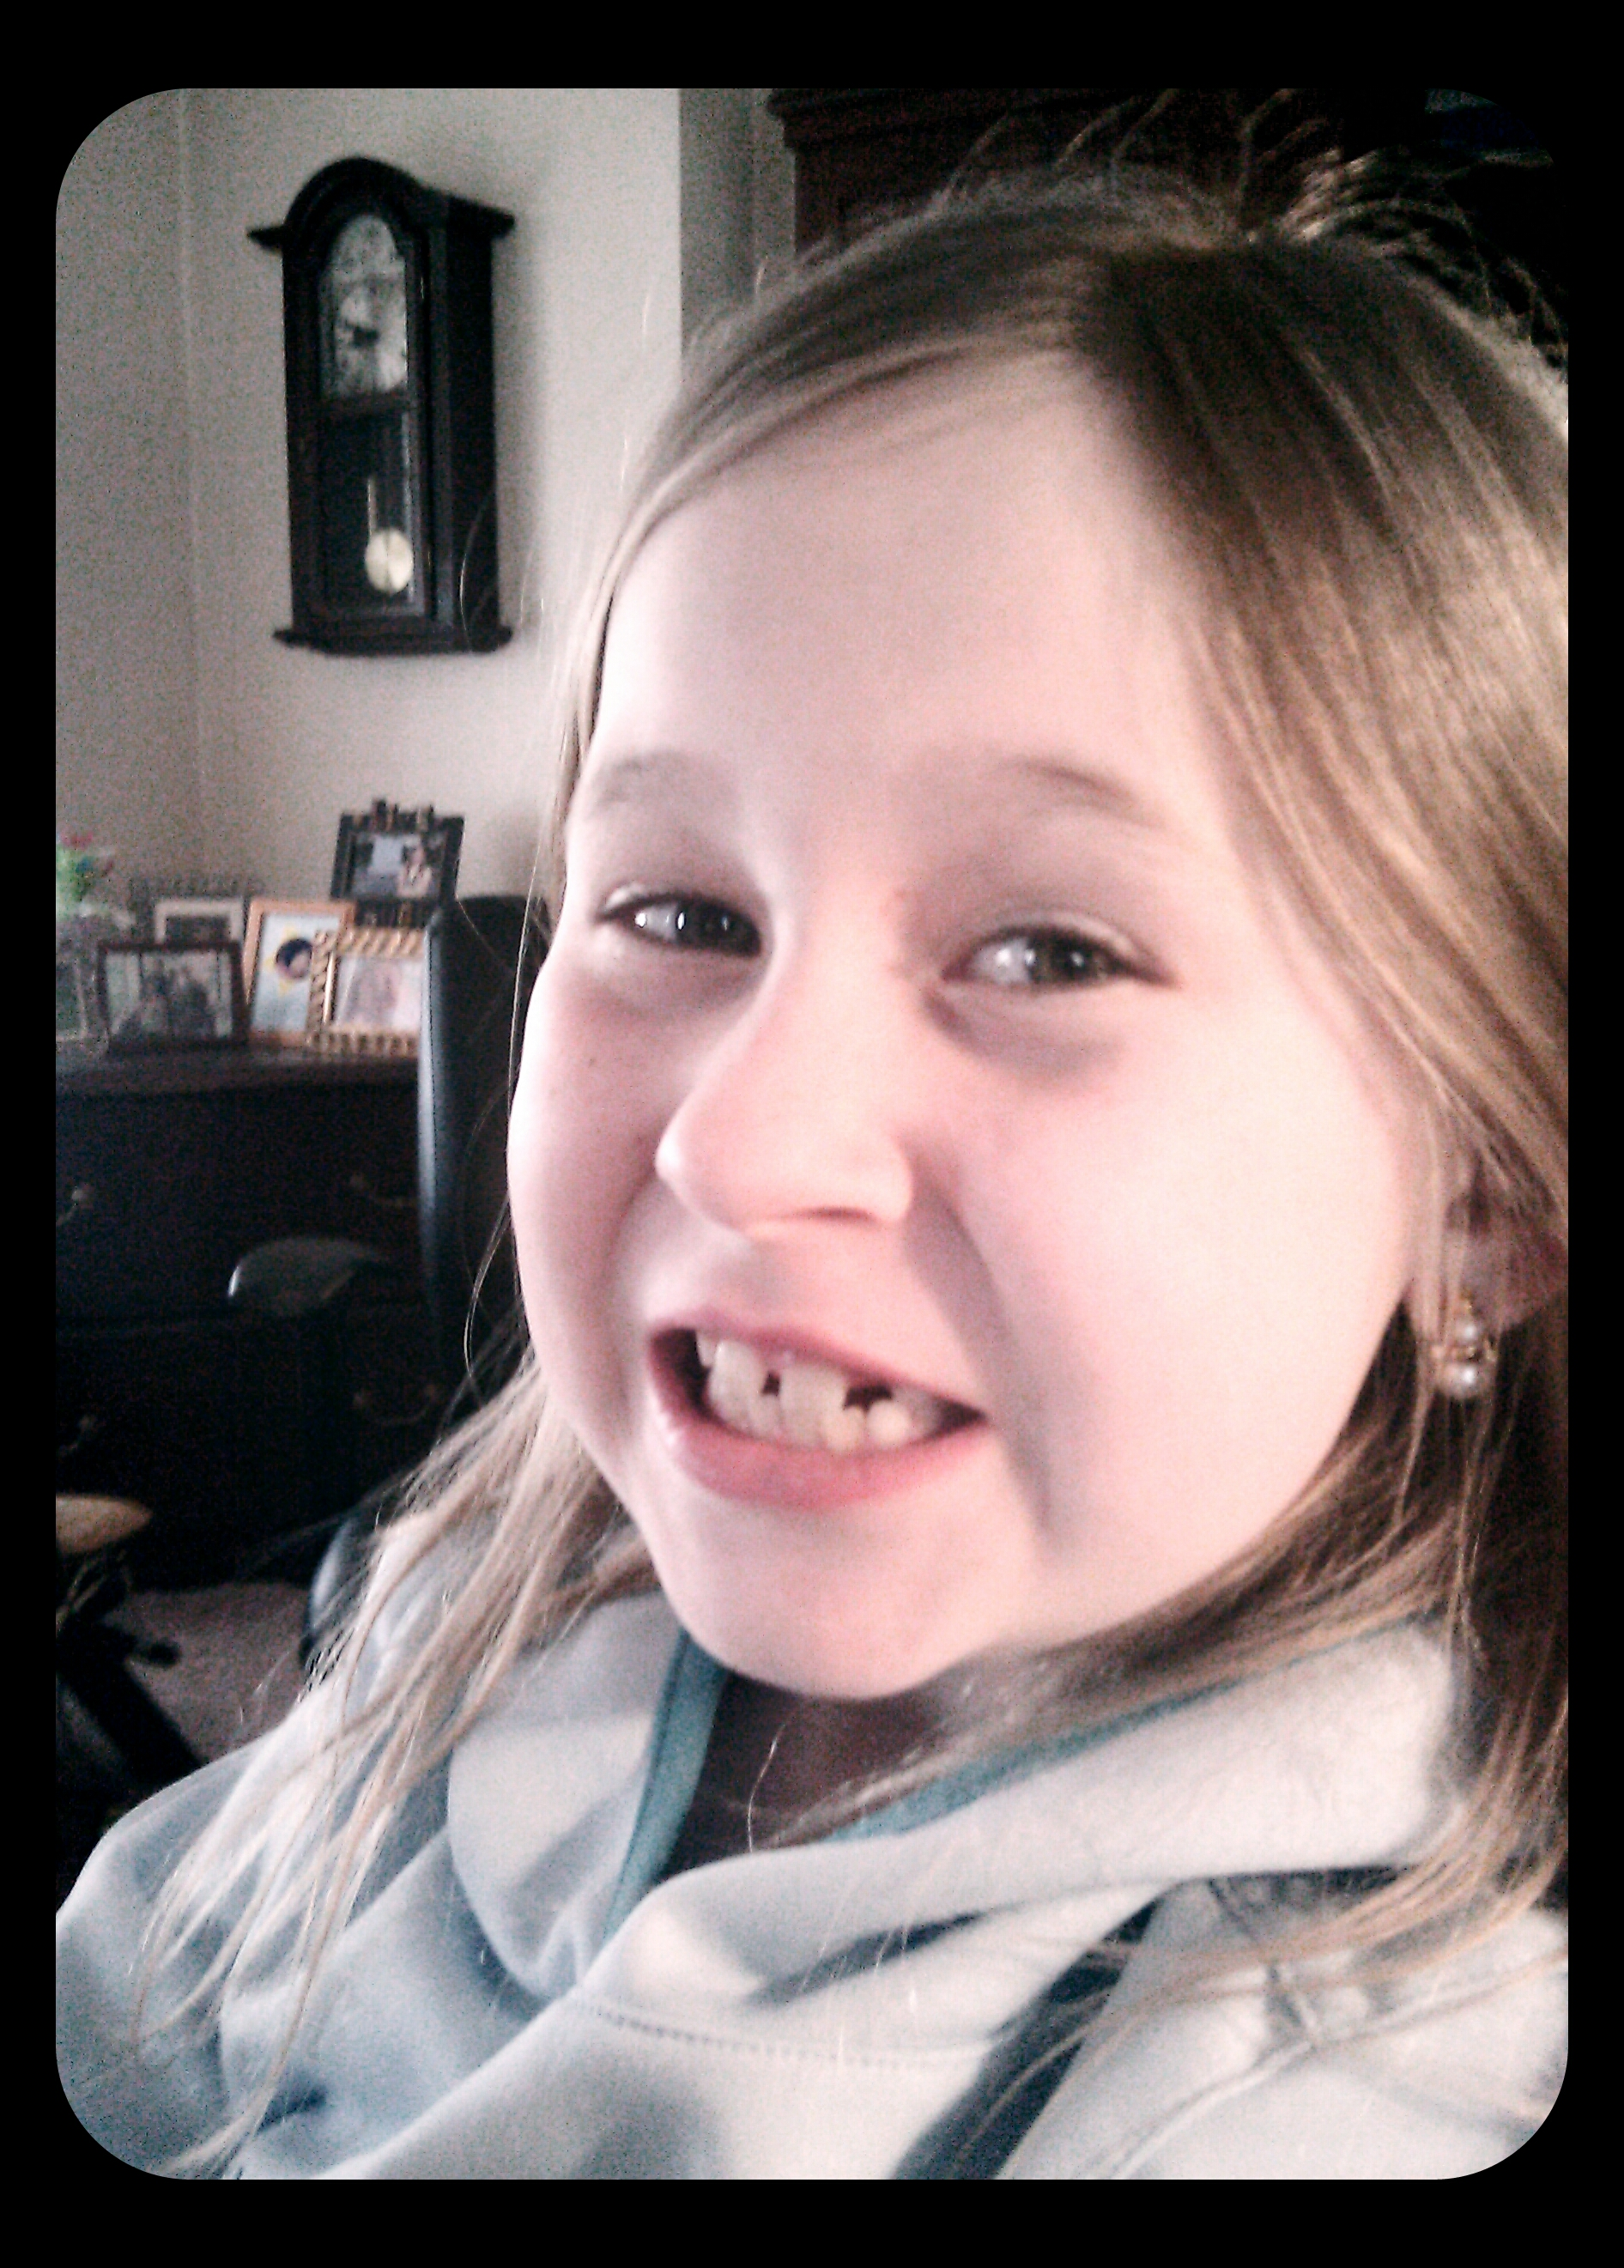 Mia pulled her own tooth